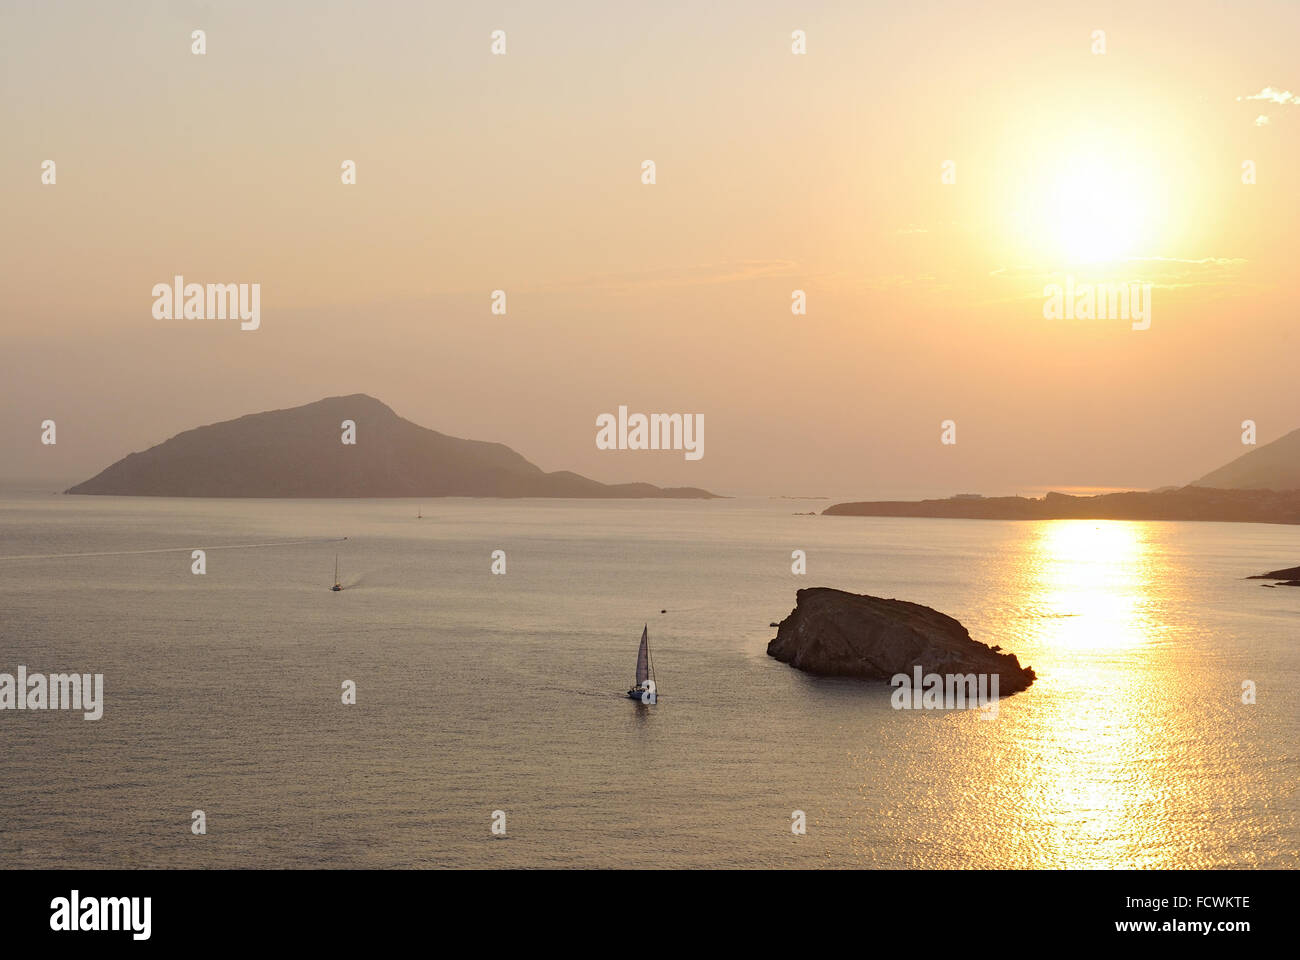 The magnificent golden sunset on the Aegean Sea at Cape Sounion. Greece. Stock Photo